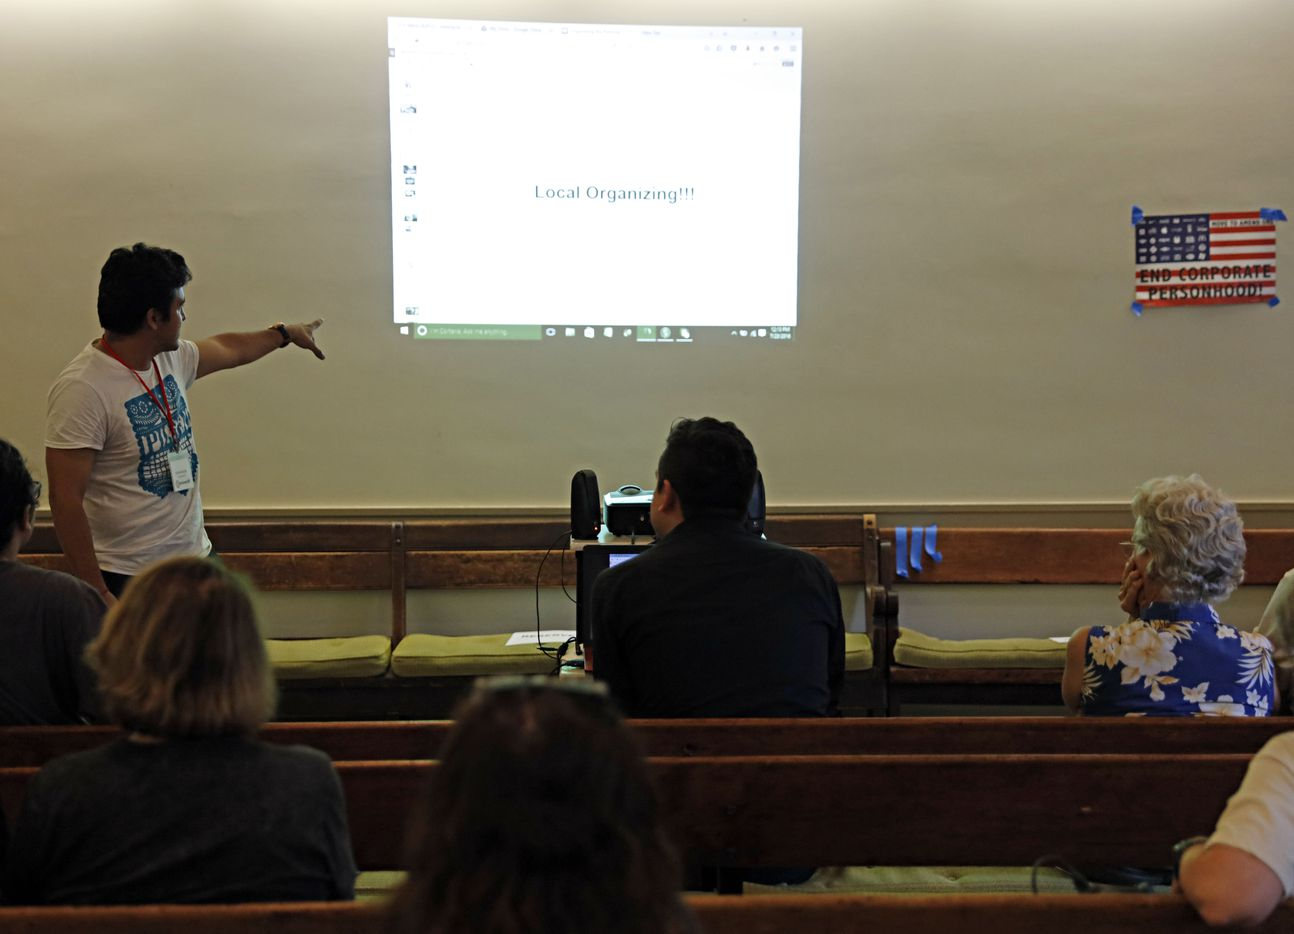 Byron Sigcho of Chicago hosted a lecture on community organizing during the People's Convention on Saturday ahead of the Democratic National Convention in Philadelphia.